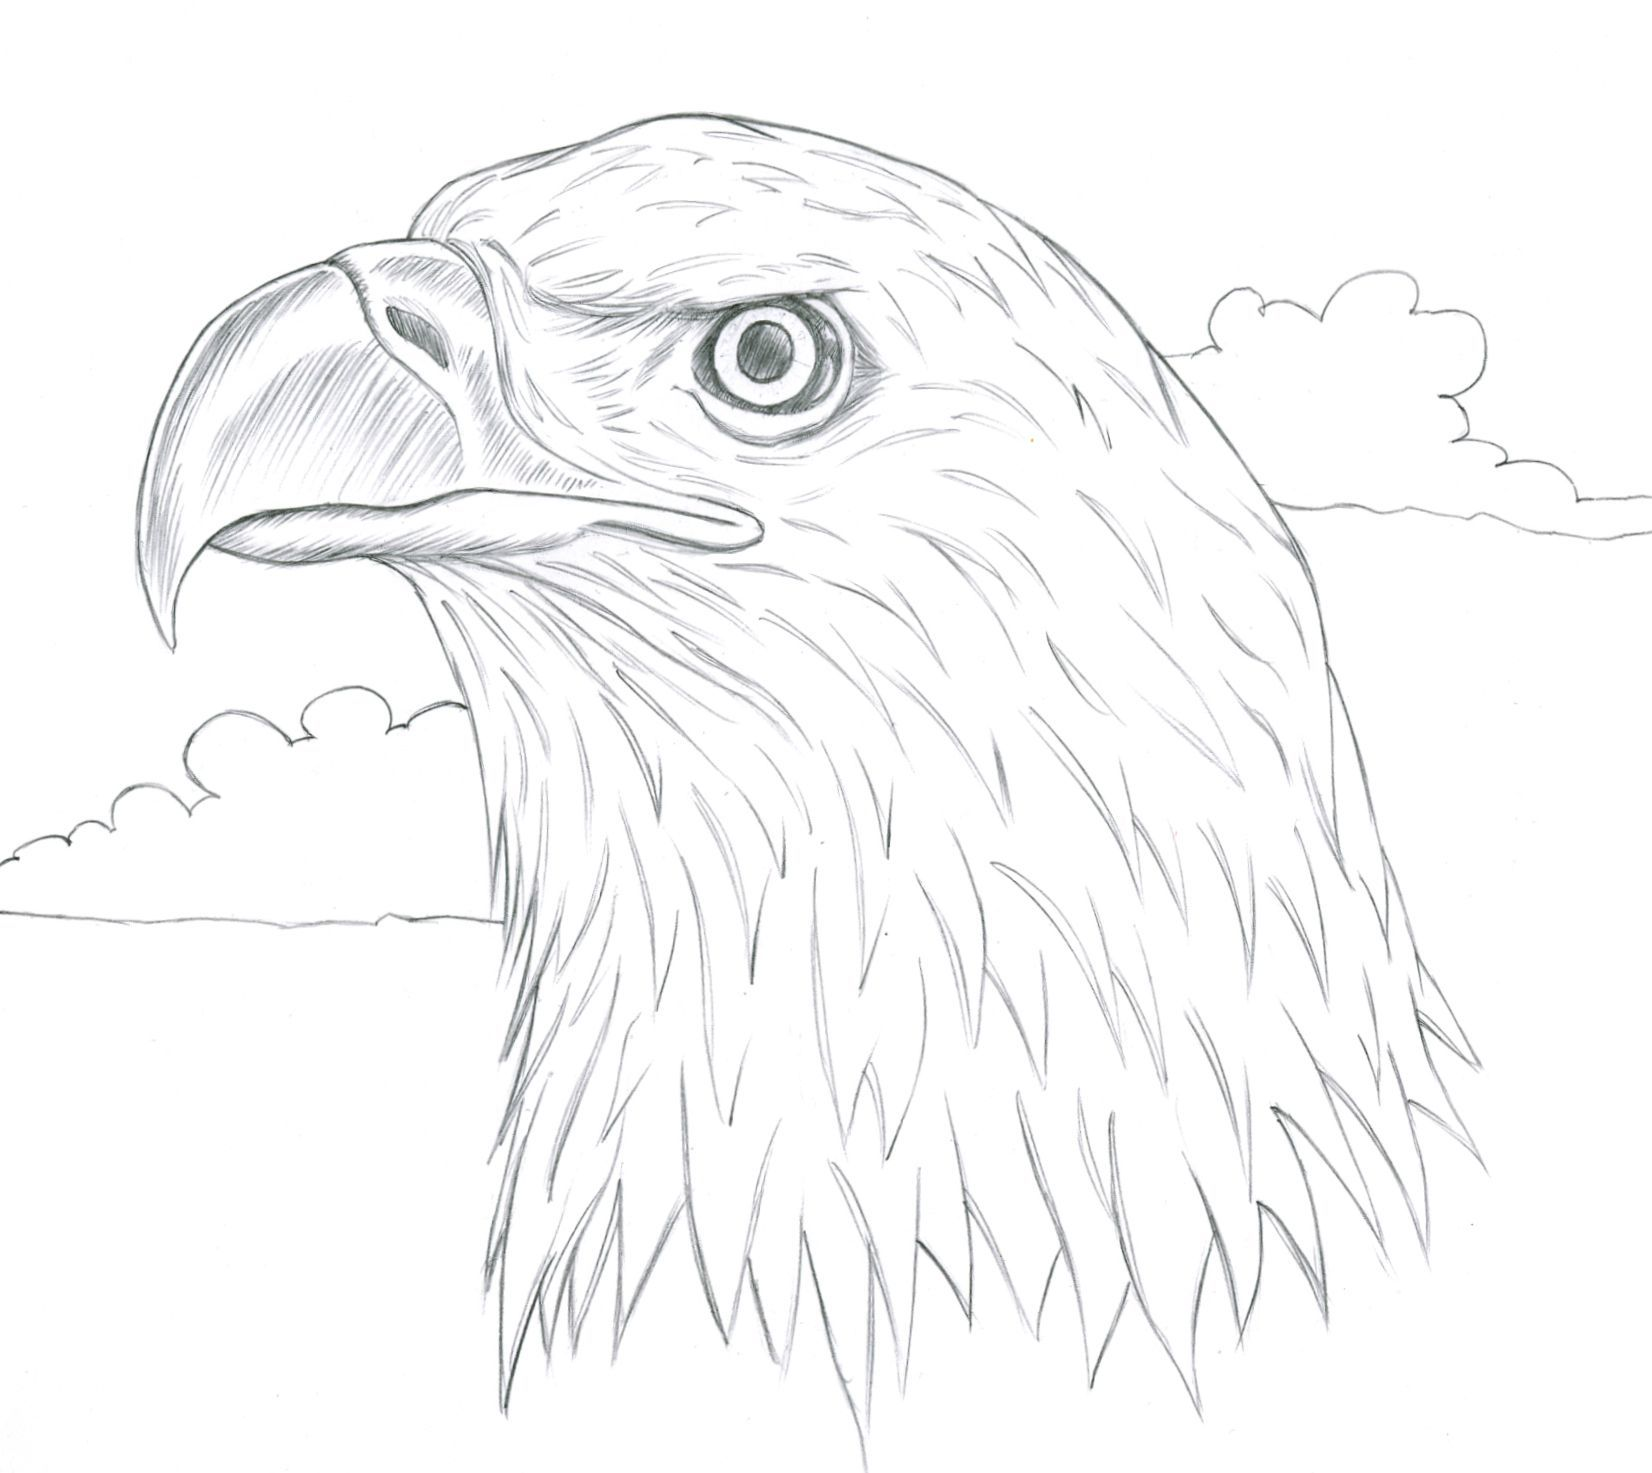 Pin by Jenna Moffitt on drawings in 2019 | Eagle drawing ...